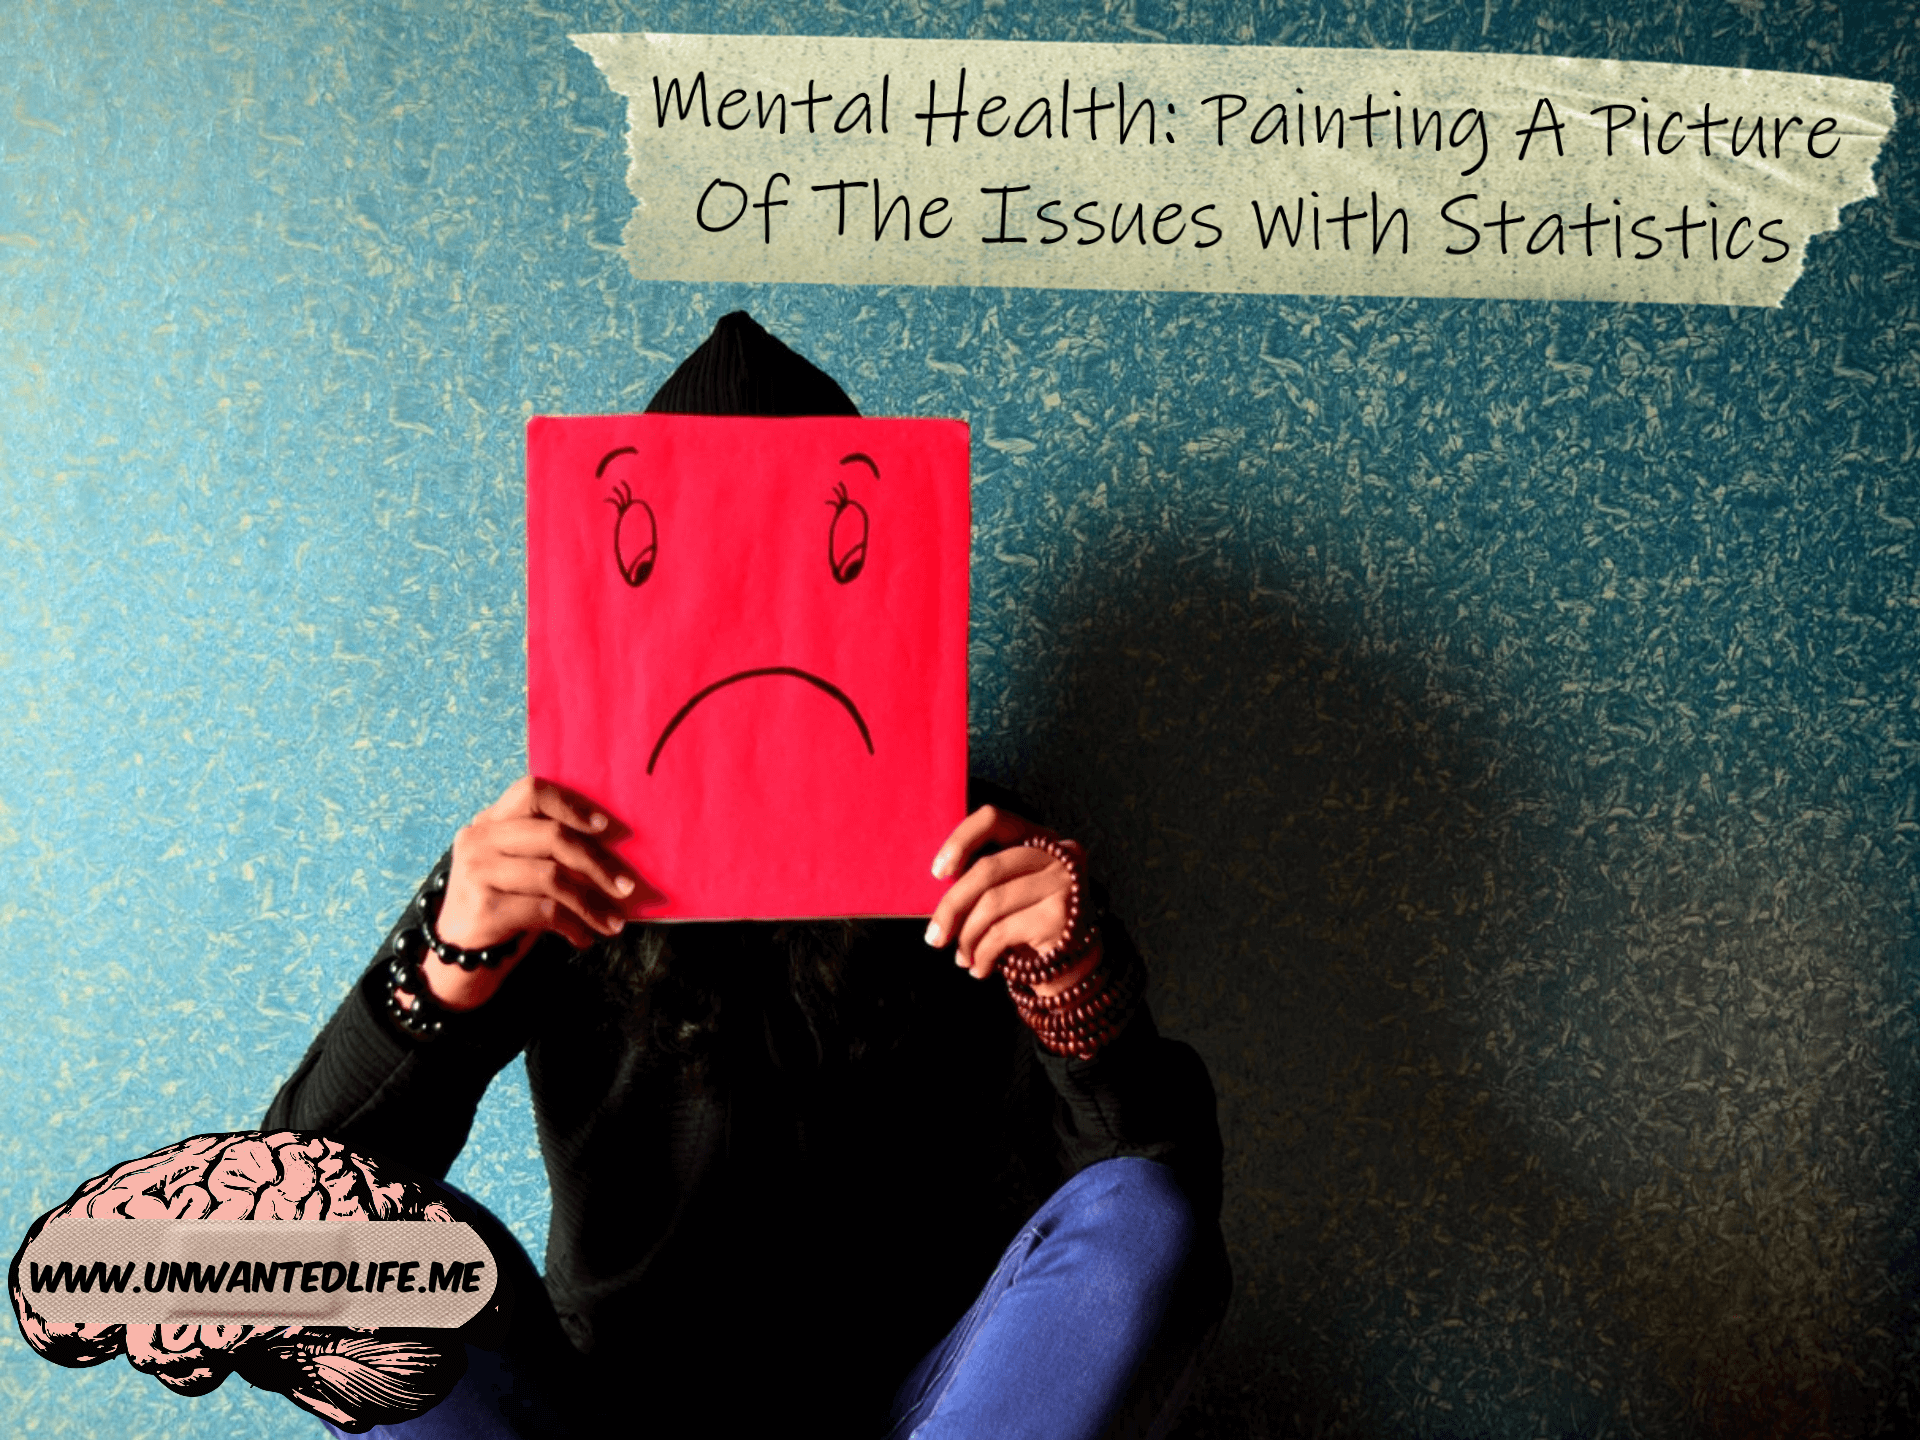 A photo of a person sitting down against the wall hiding their face behind a simple drawing of a sad face with the article title - Mental Health: Painting A Picture Of The Issues With Statistics - across the top of the photo